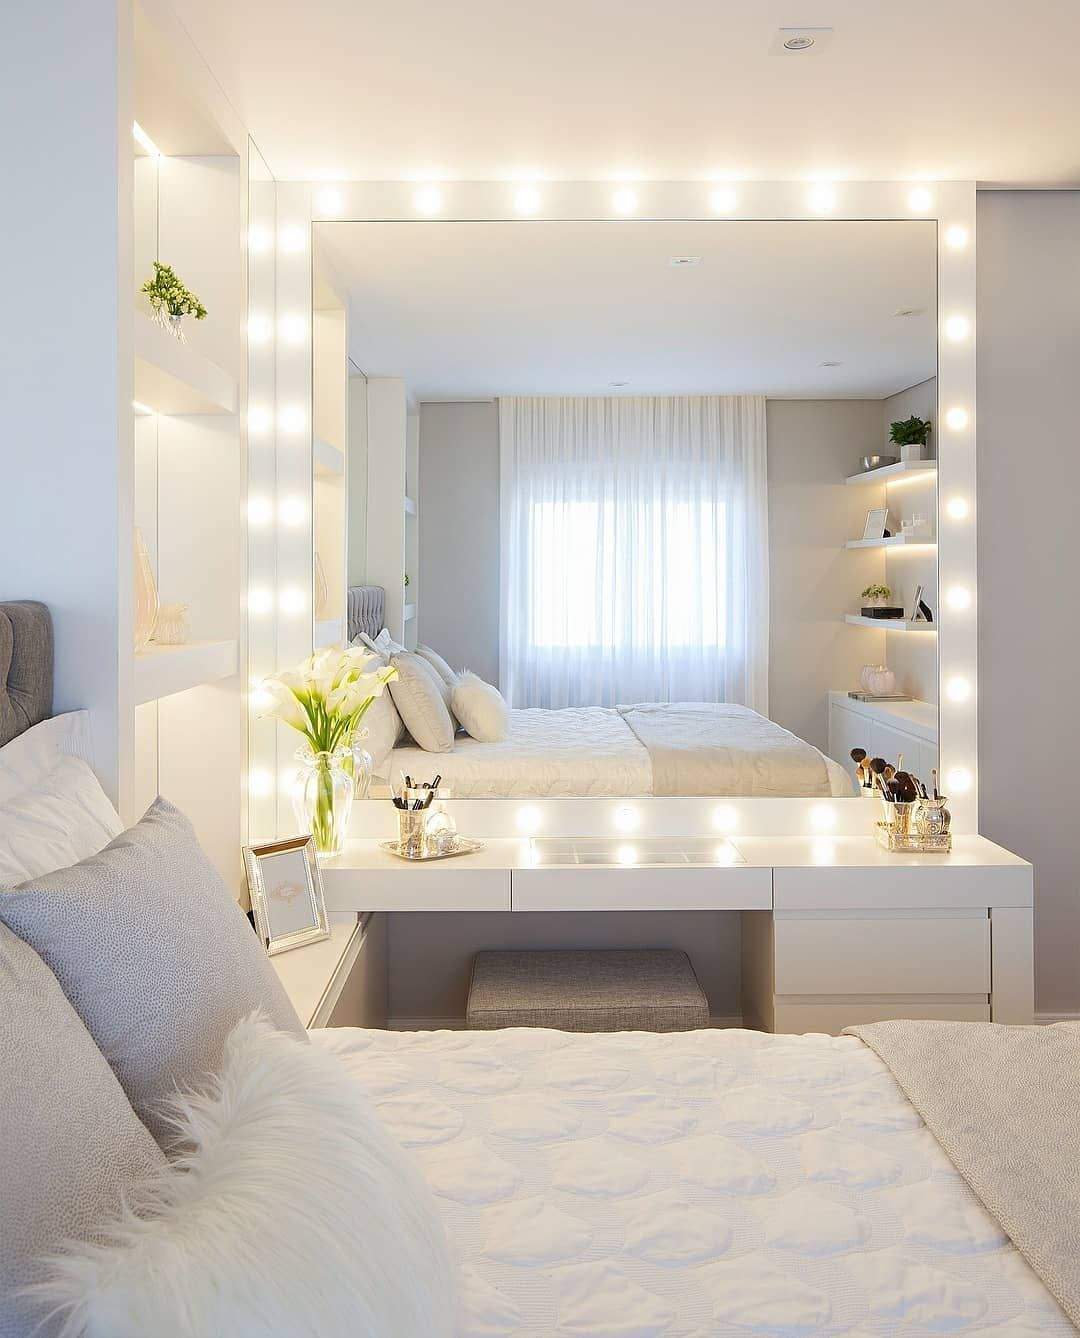 Bancada com espelho camarim inspiracao linda de dormitorio todo clean roomdecorforkids bedroom also space saving furniture design ideas for small interior rh pinterest